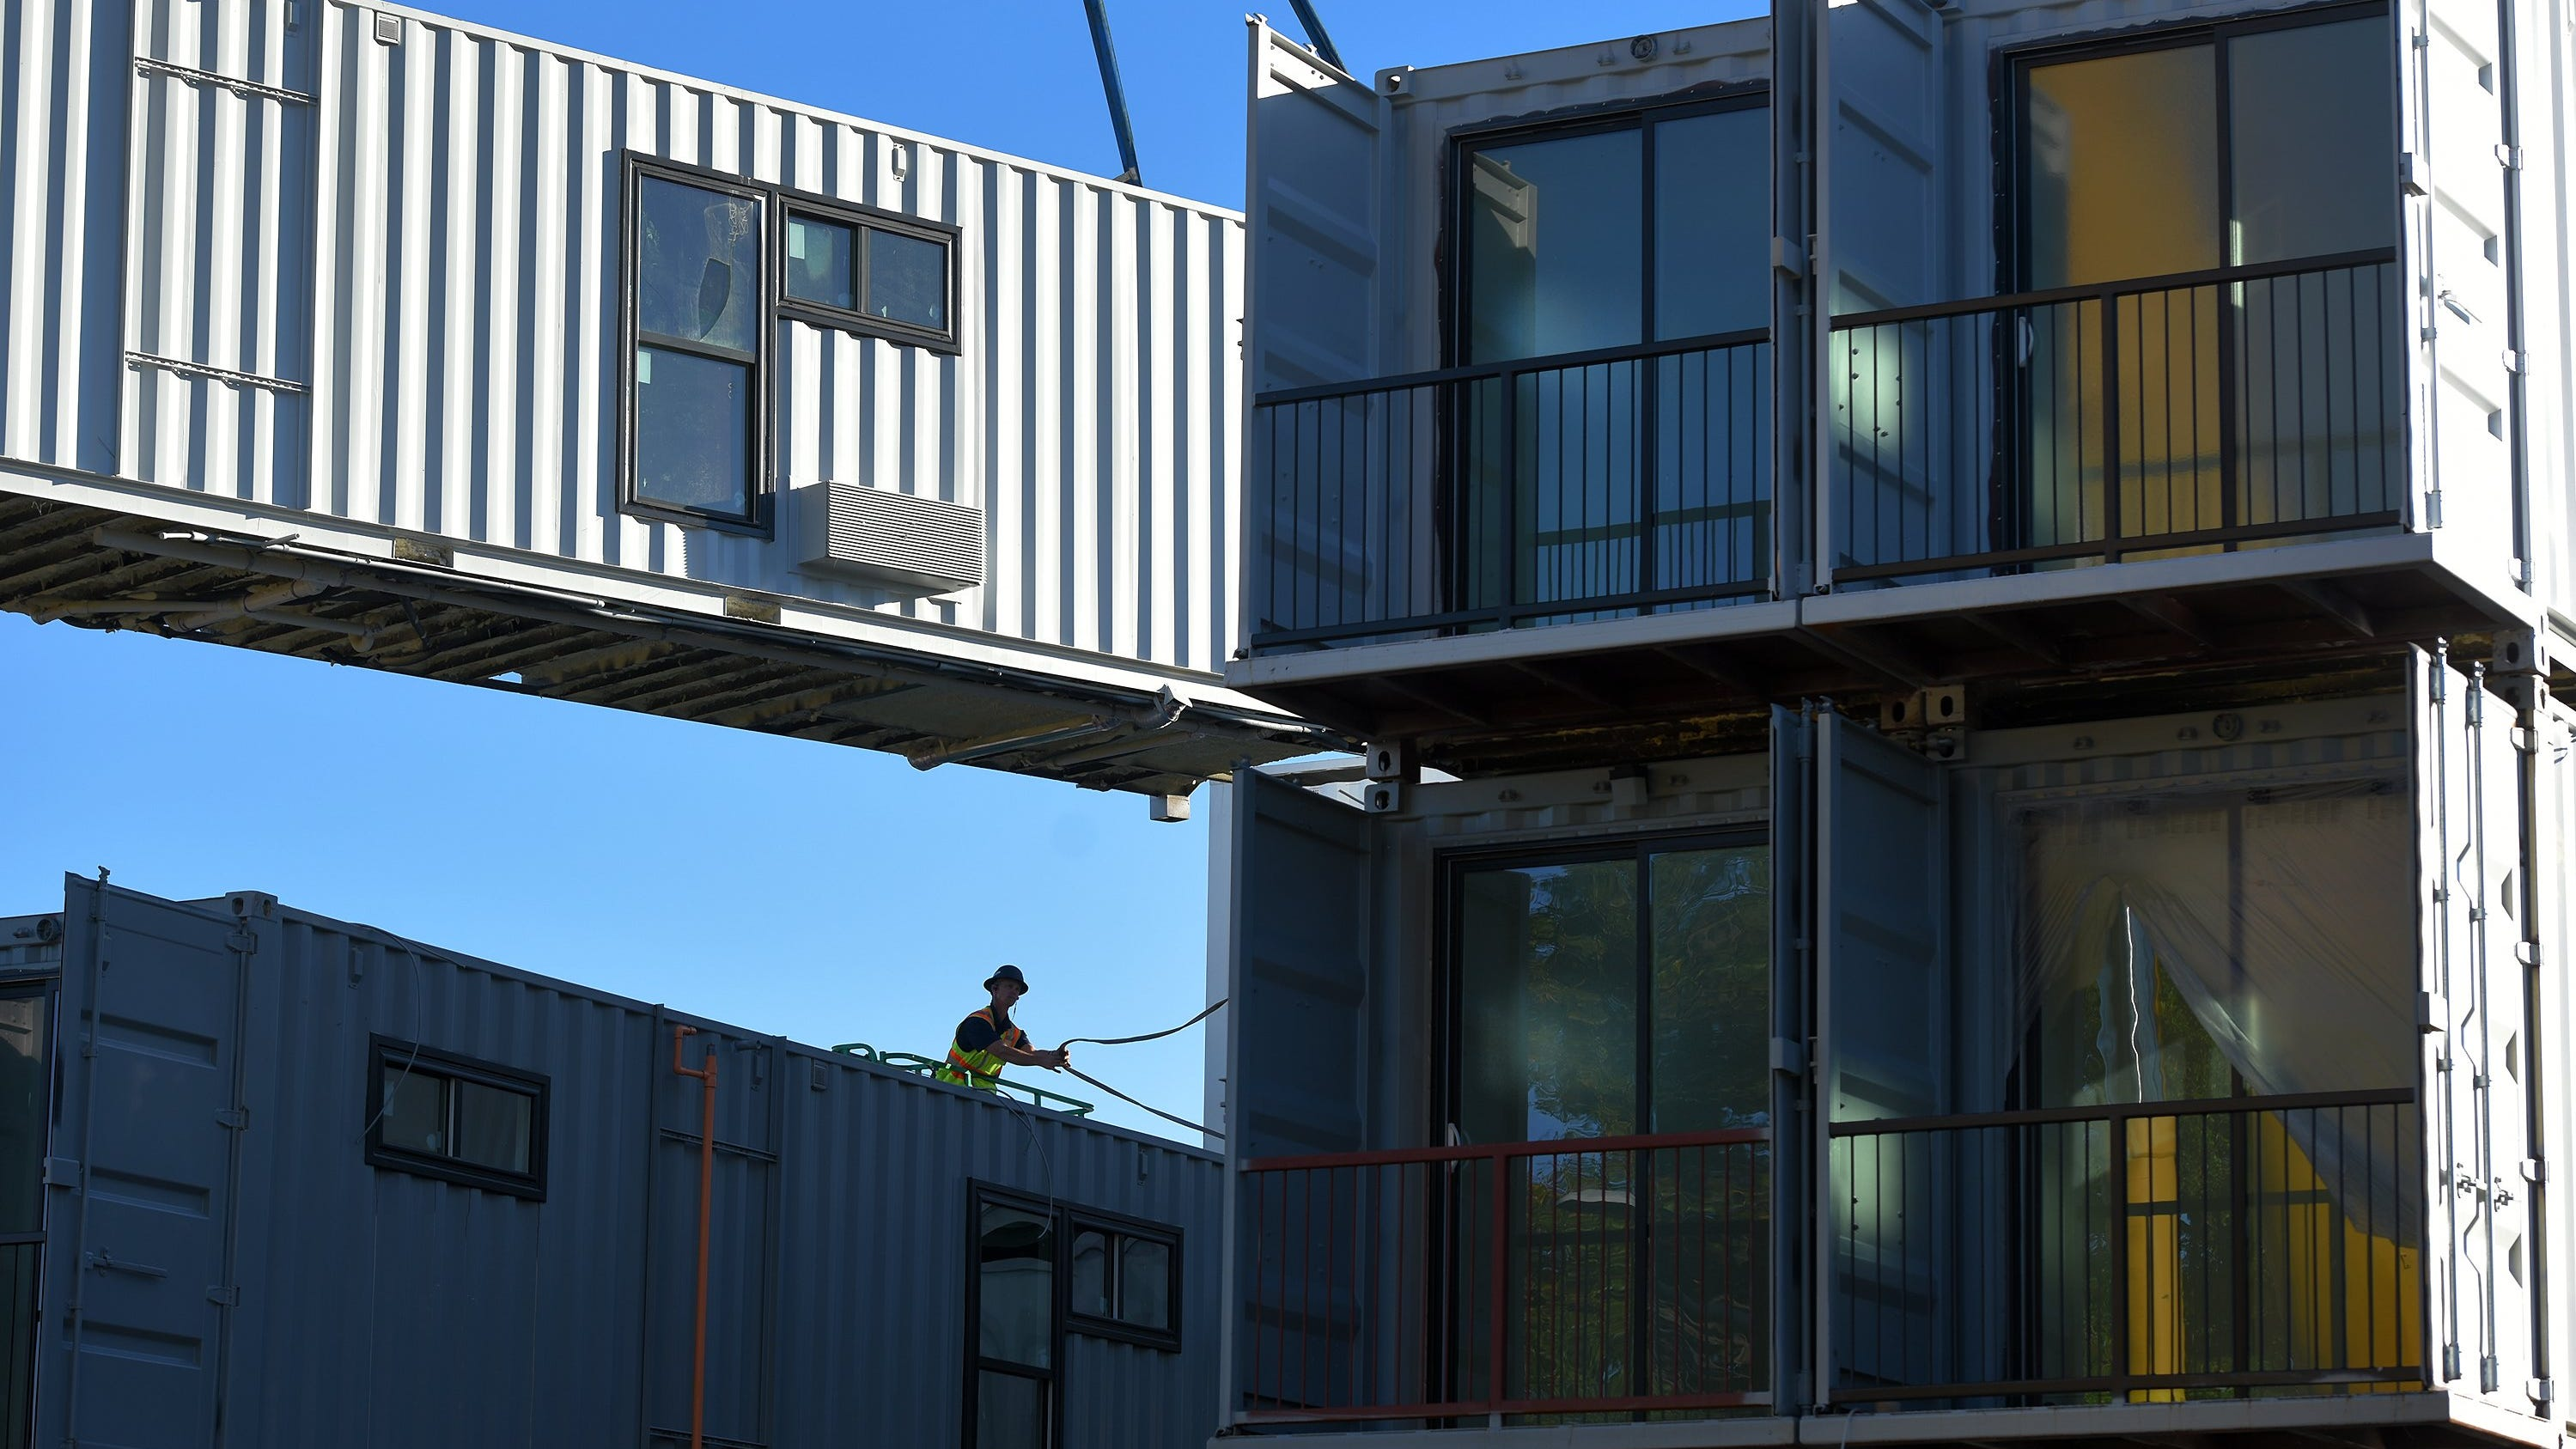 The shipping containers stacked to make an 18-unit residential development on Ashley Street in downtown Jacksonville have balconies and windows added to them as part of their conversion to studio apartments and Airbnb rentals. The work is on track to finish by the end of the year so the unusual twist to housing will be available for rent in 2021.